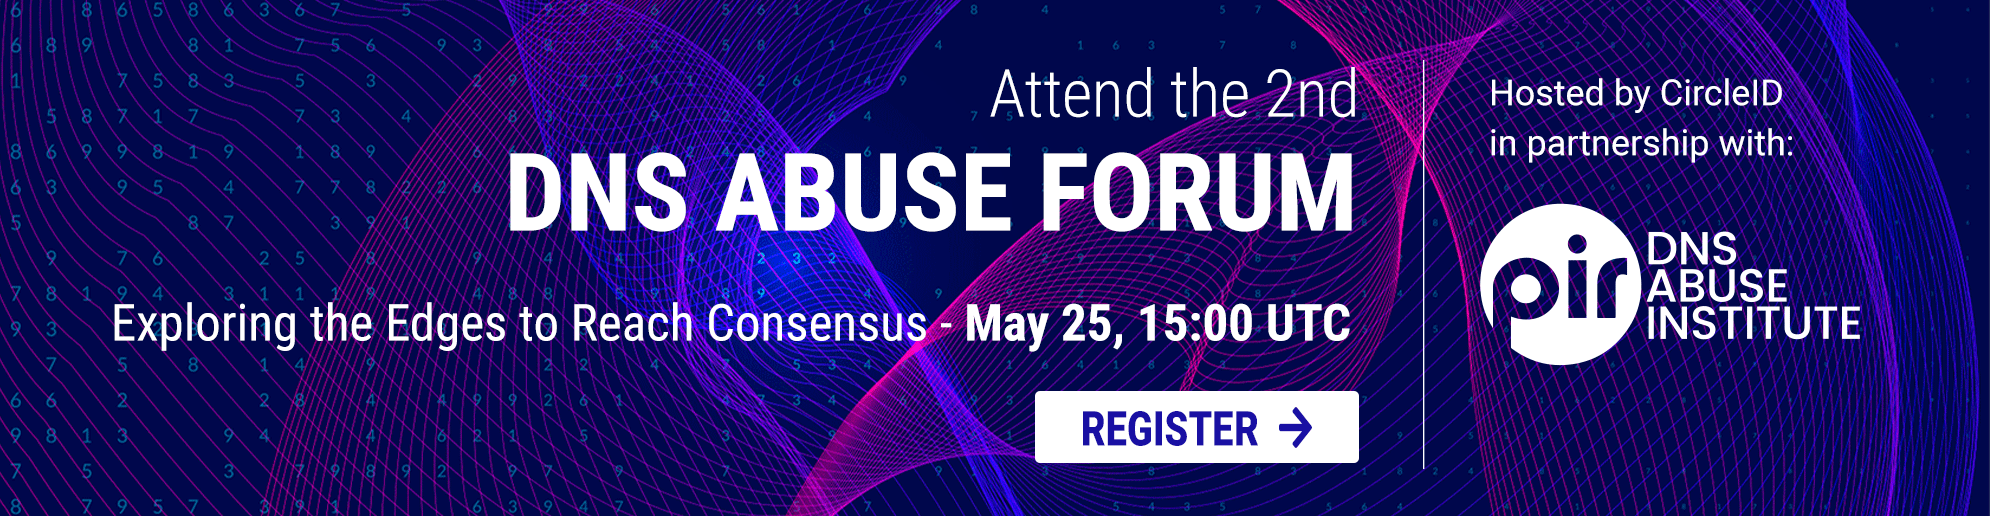 DNS Abuse Forum - May 25